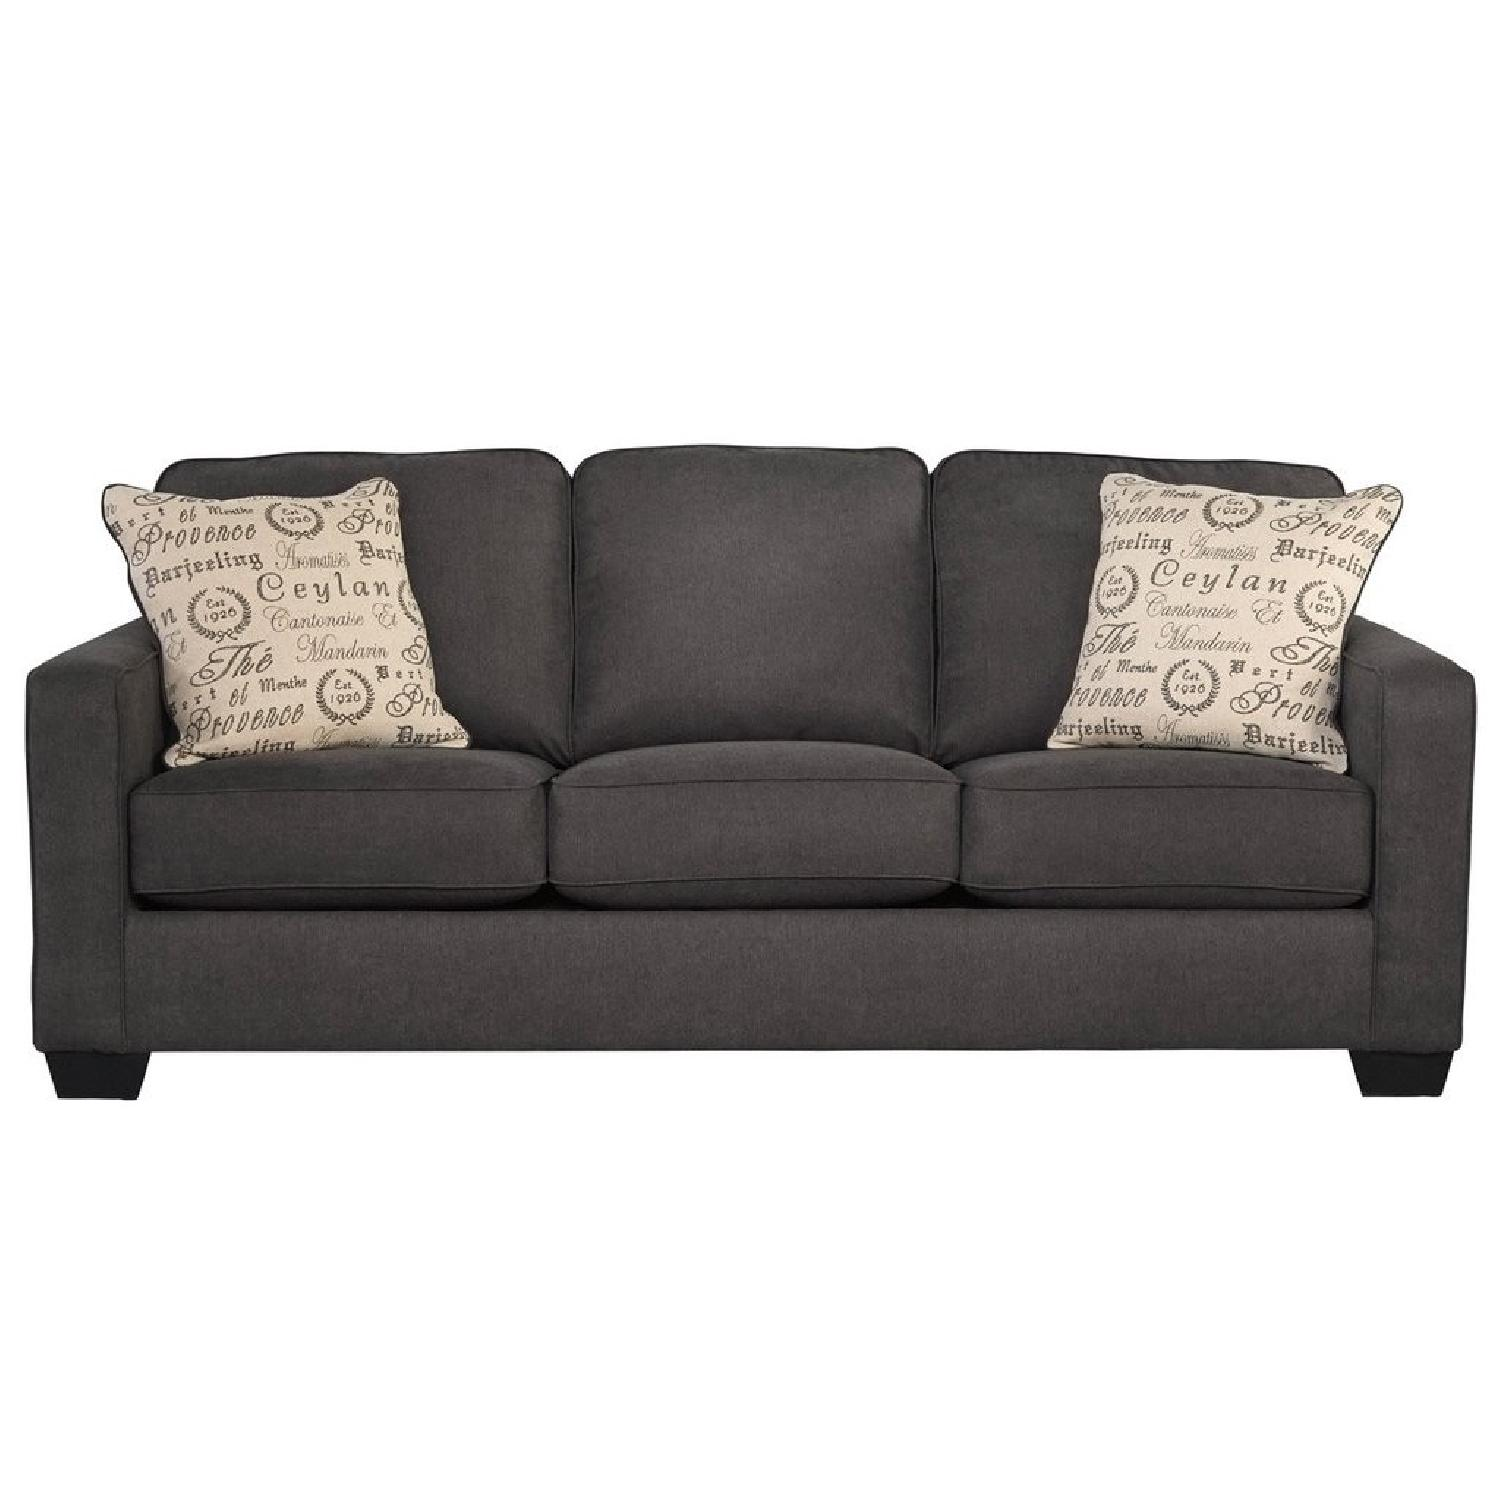 Ashley Alenya Contemporary 3 Seater Sofa In Charcoal Fabric ...